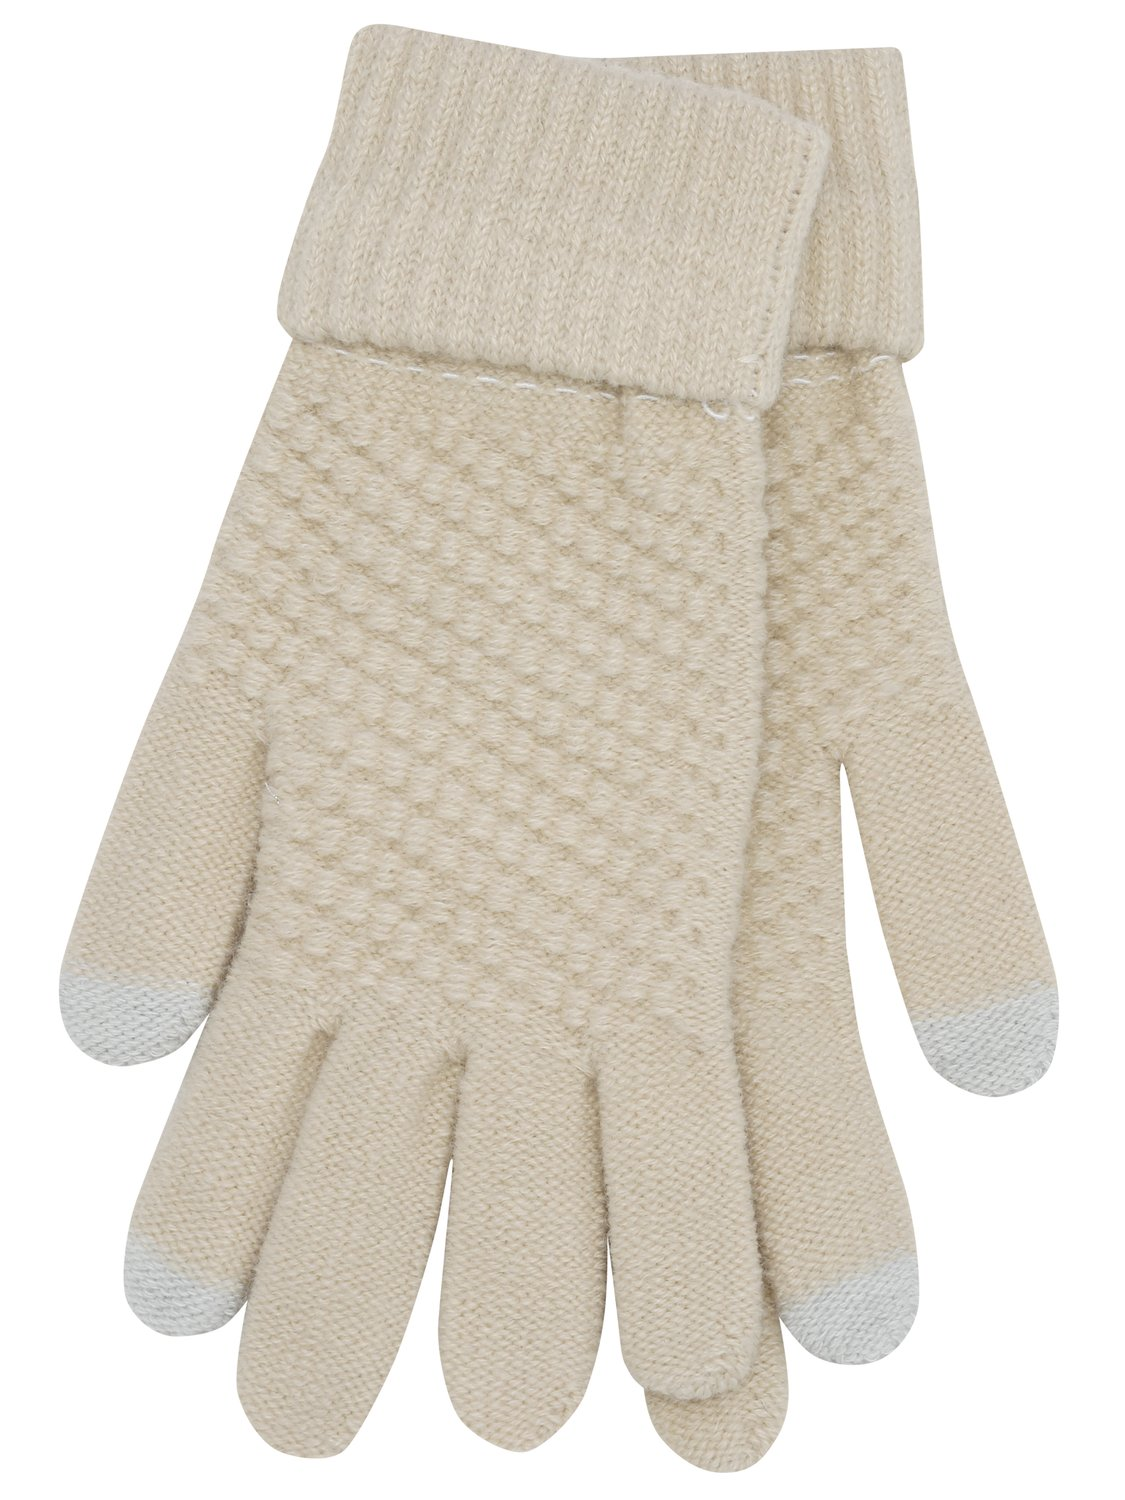 ladies touch screen knitted gloves smart phone and tablet compatible one size stretch fit  - camel